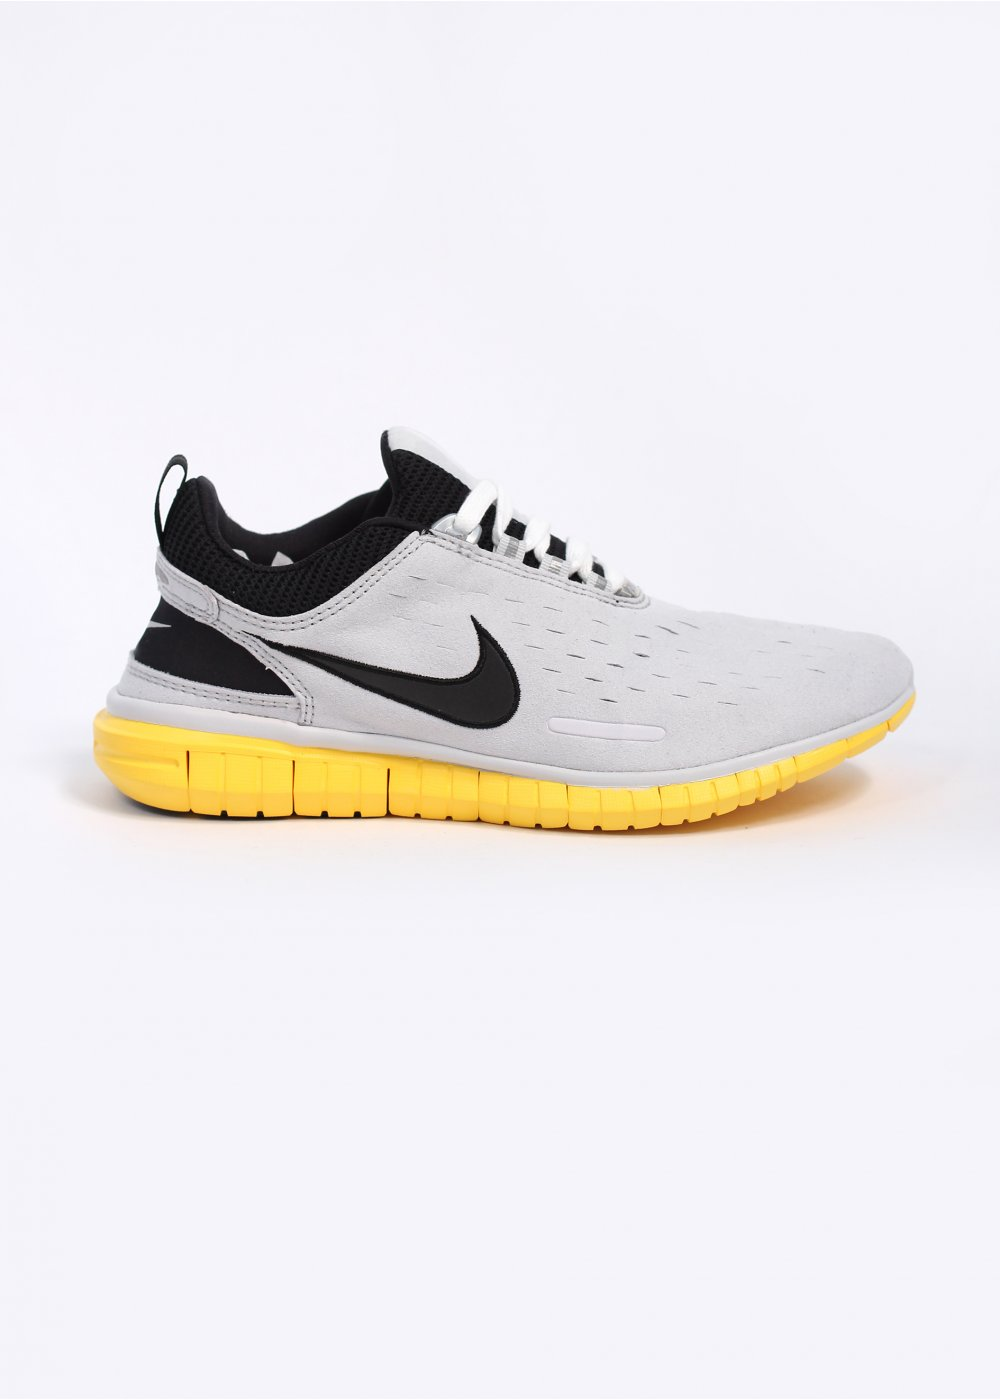 the latest 38058 f28a5 Nike Footwear Free OG Superior Trainers - Neutral Grey / Chrome Yellow